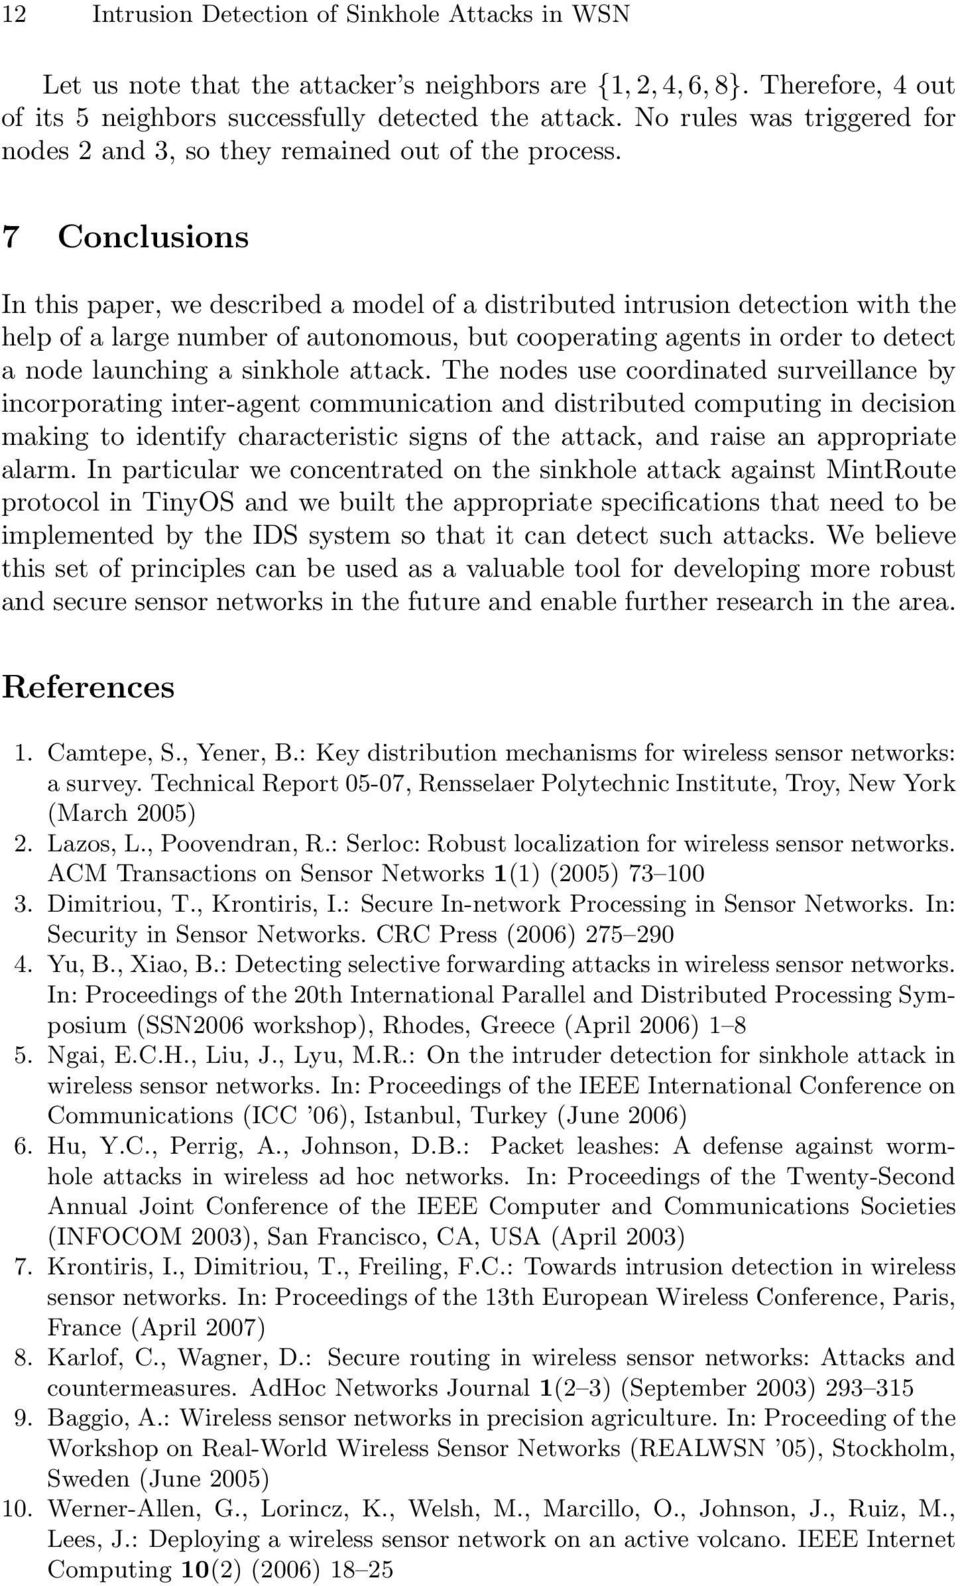 7 Conclusions In this paper, we described a model of a distributed intrusion detection with the help of a large number of autonomous, but cooperating agents in order to detect a node launching a